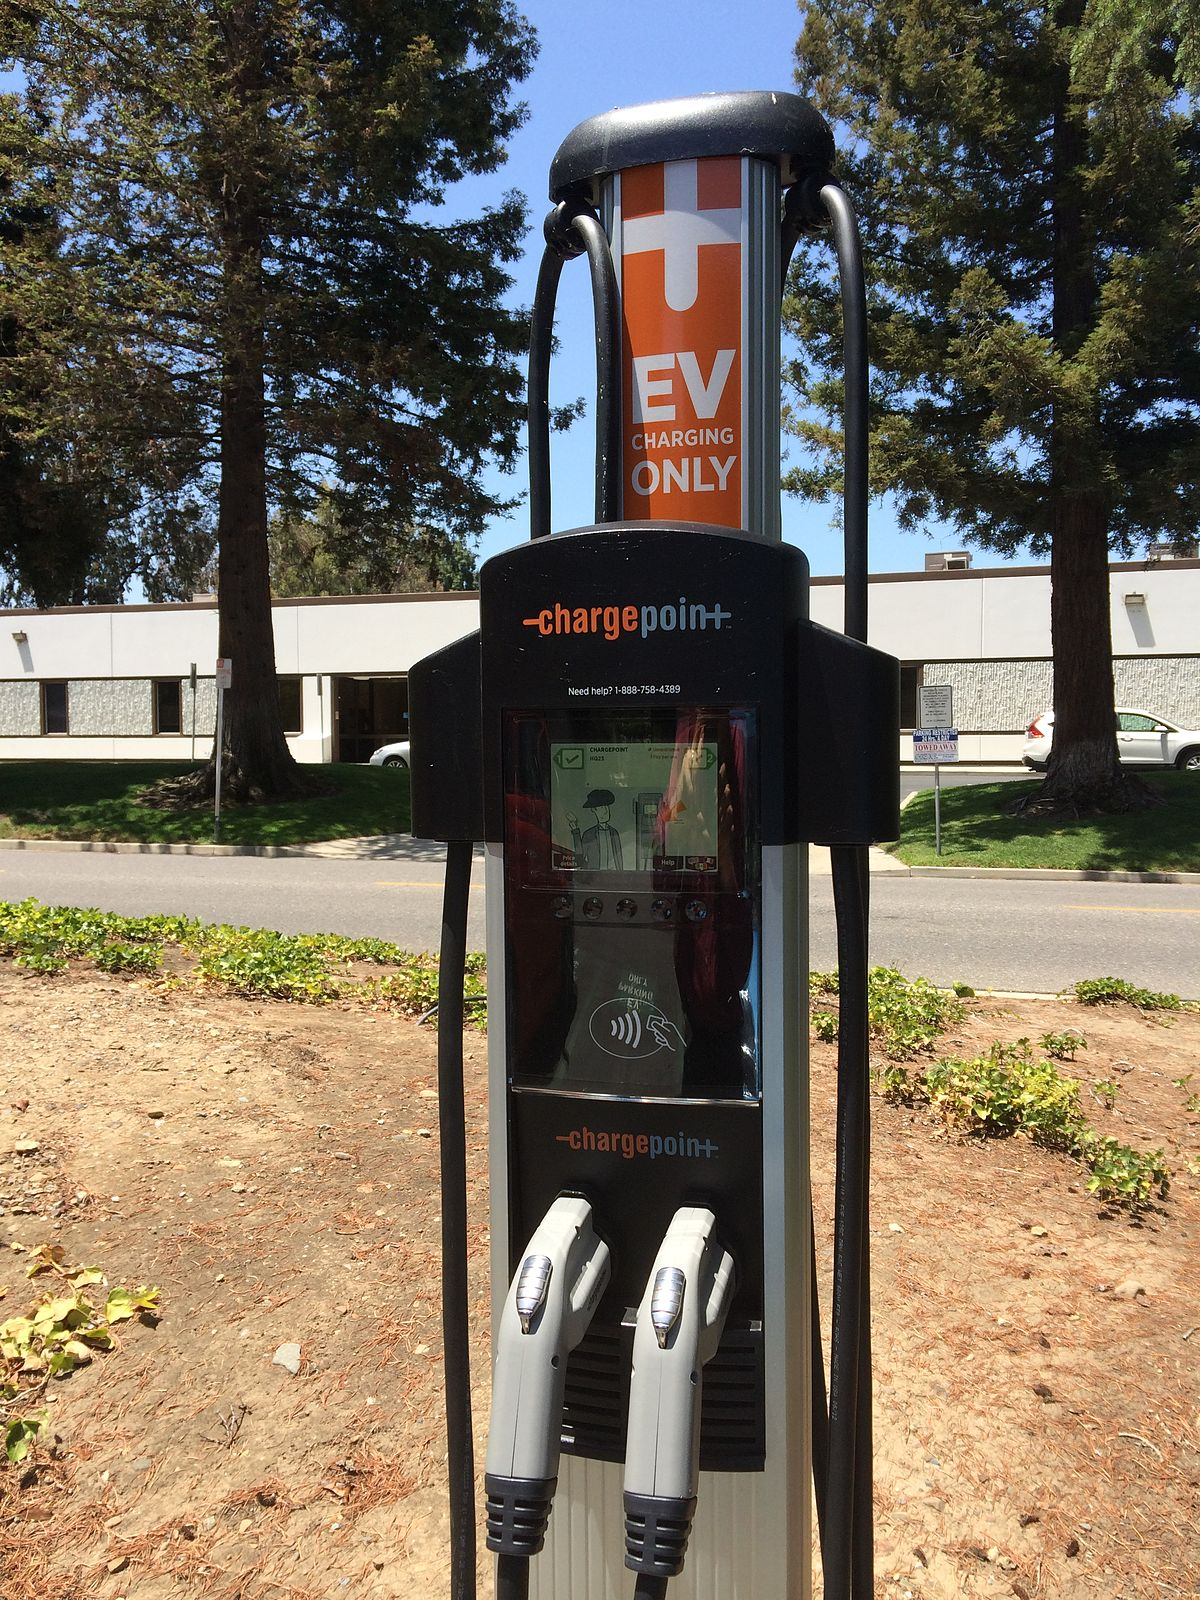 Chargepoint Wikipedia